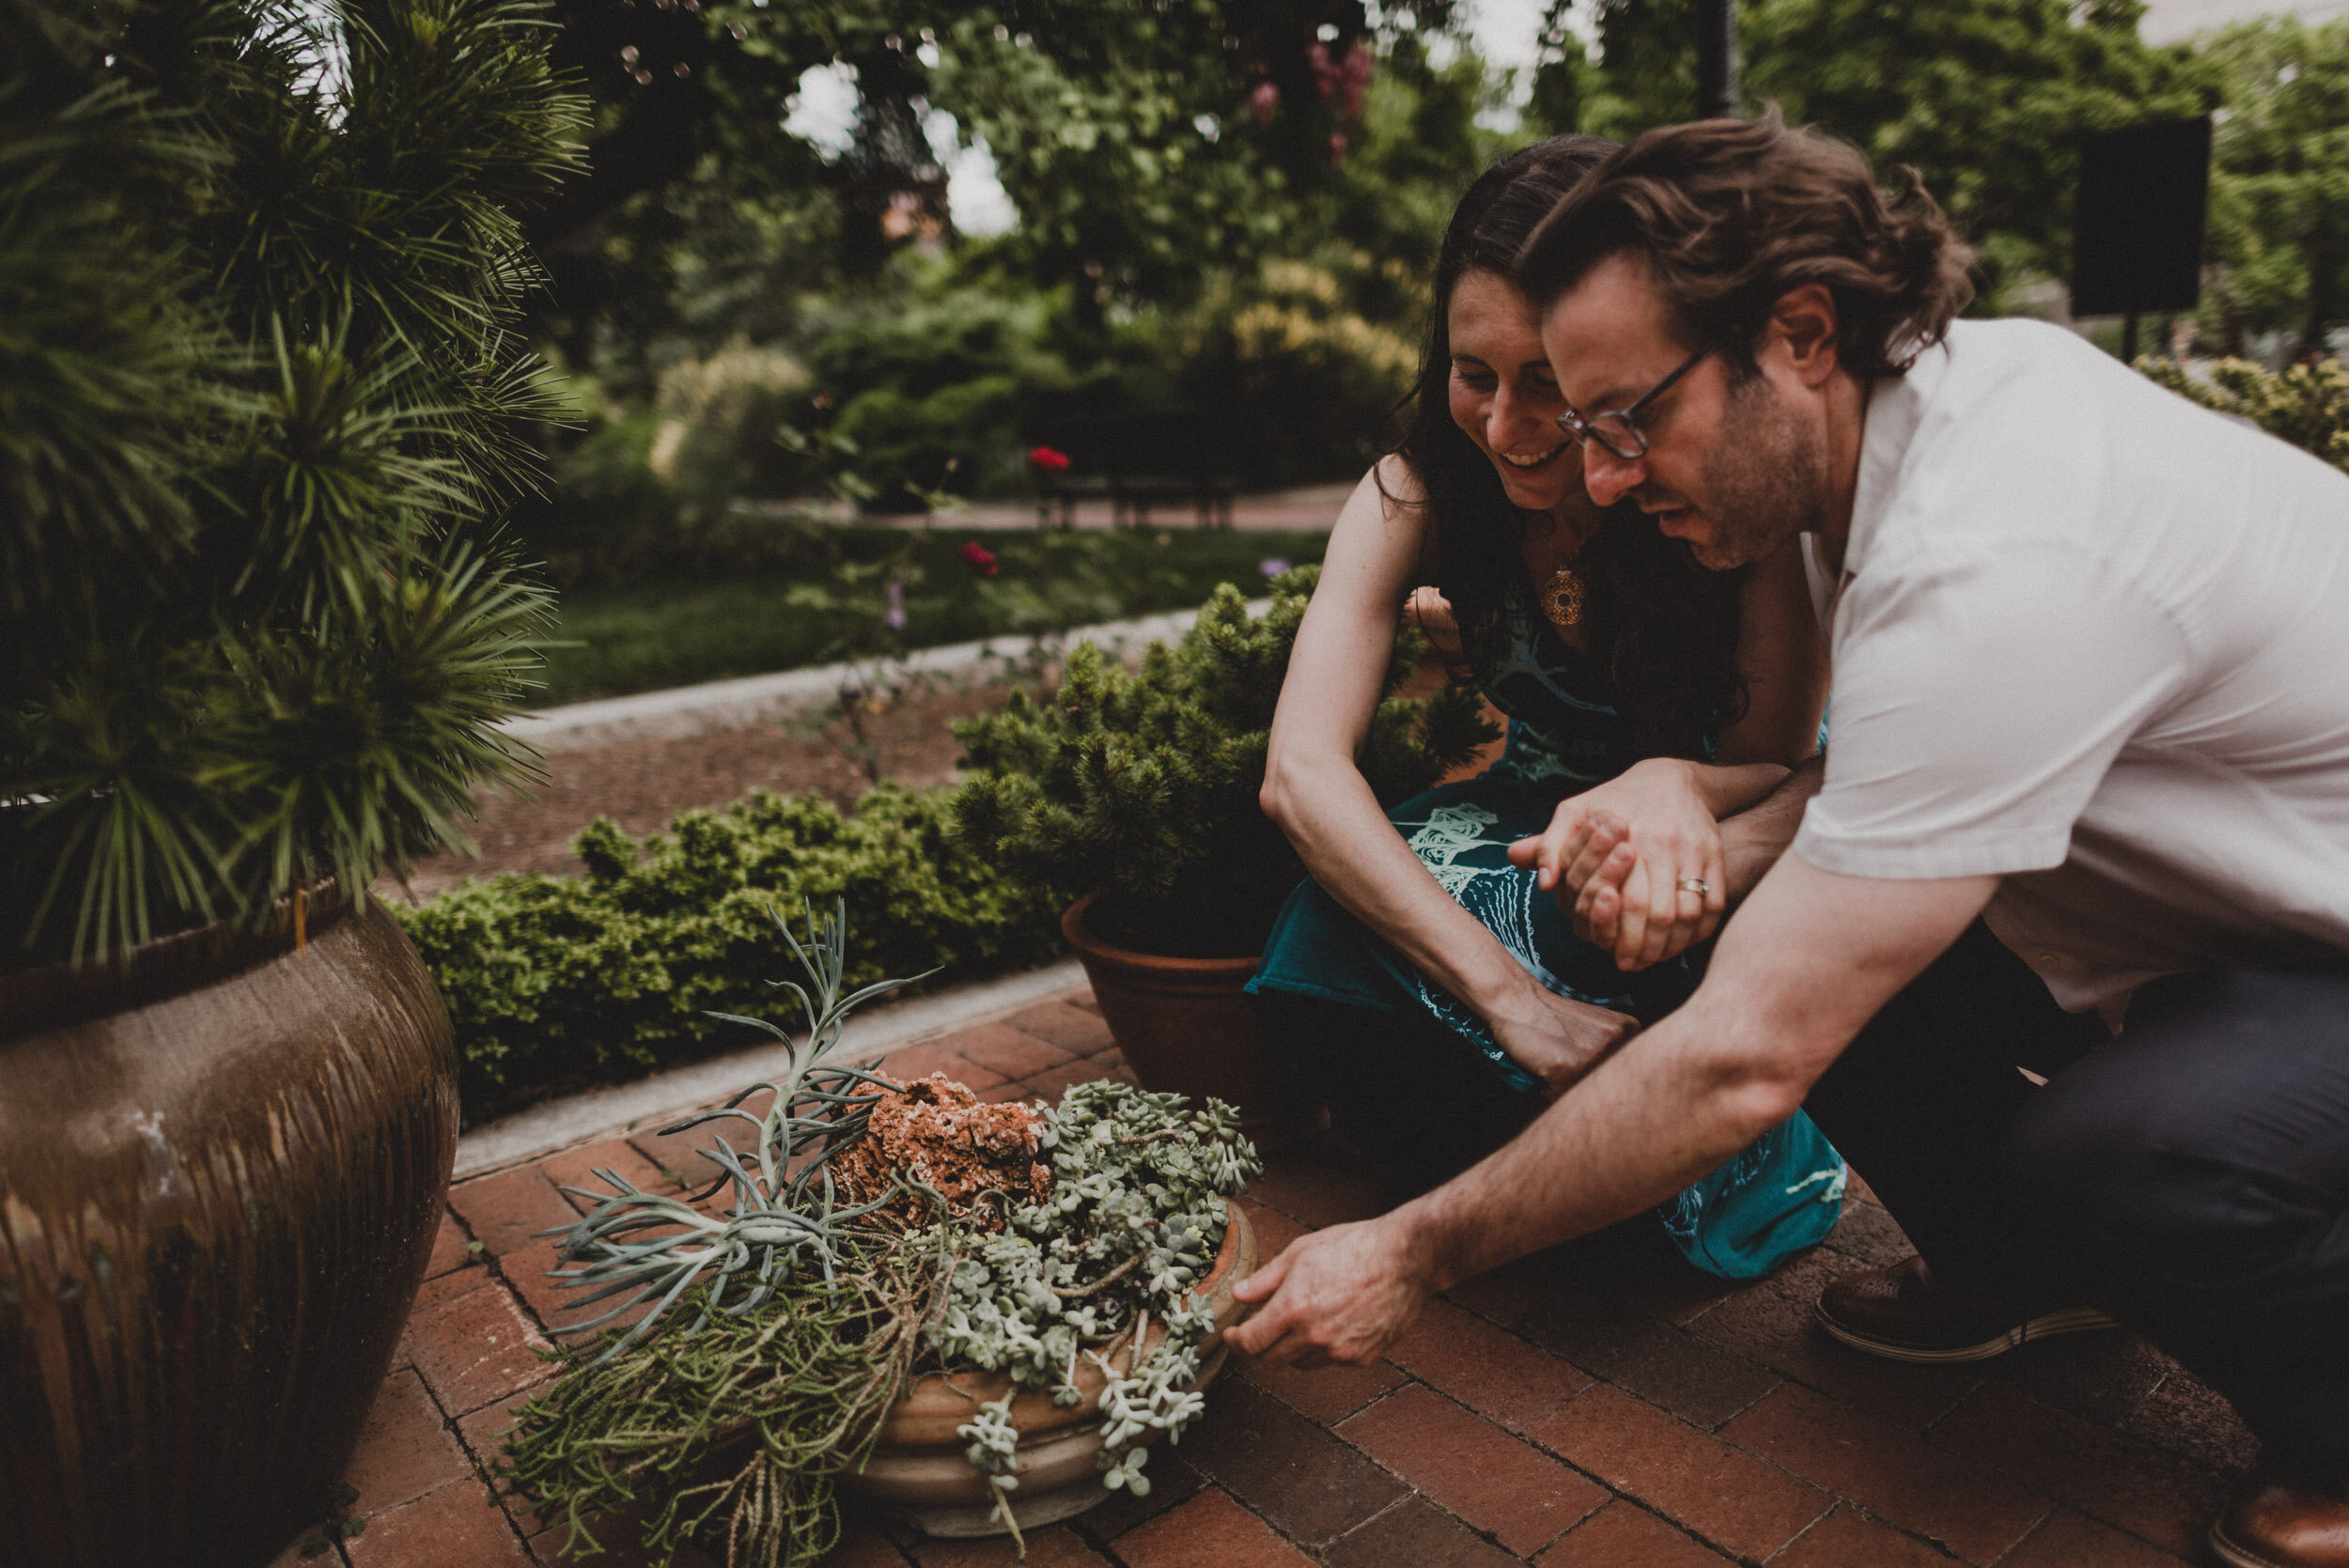 Moongate_Garden_Engagement-20.jpg